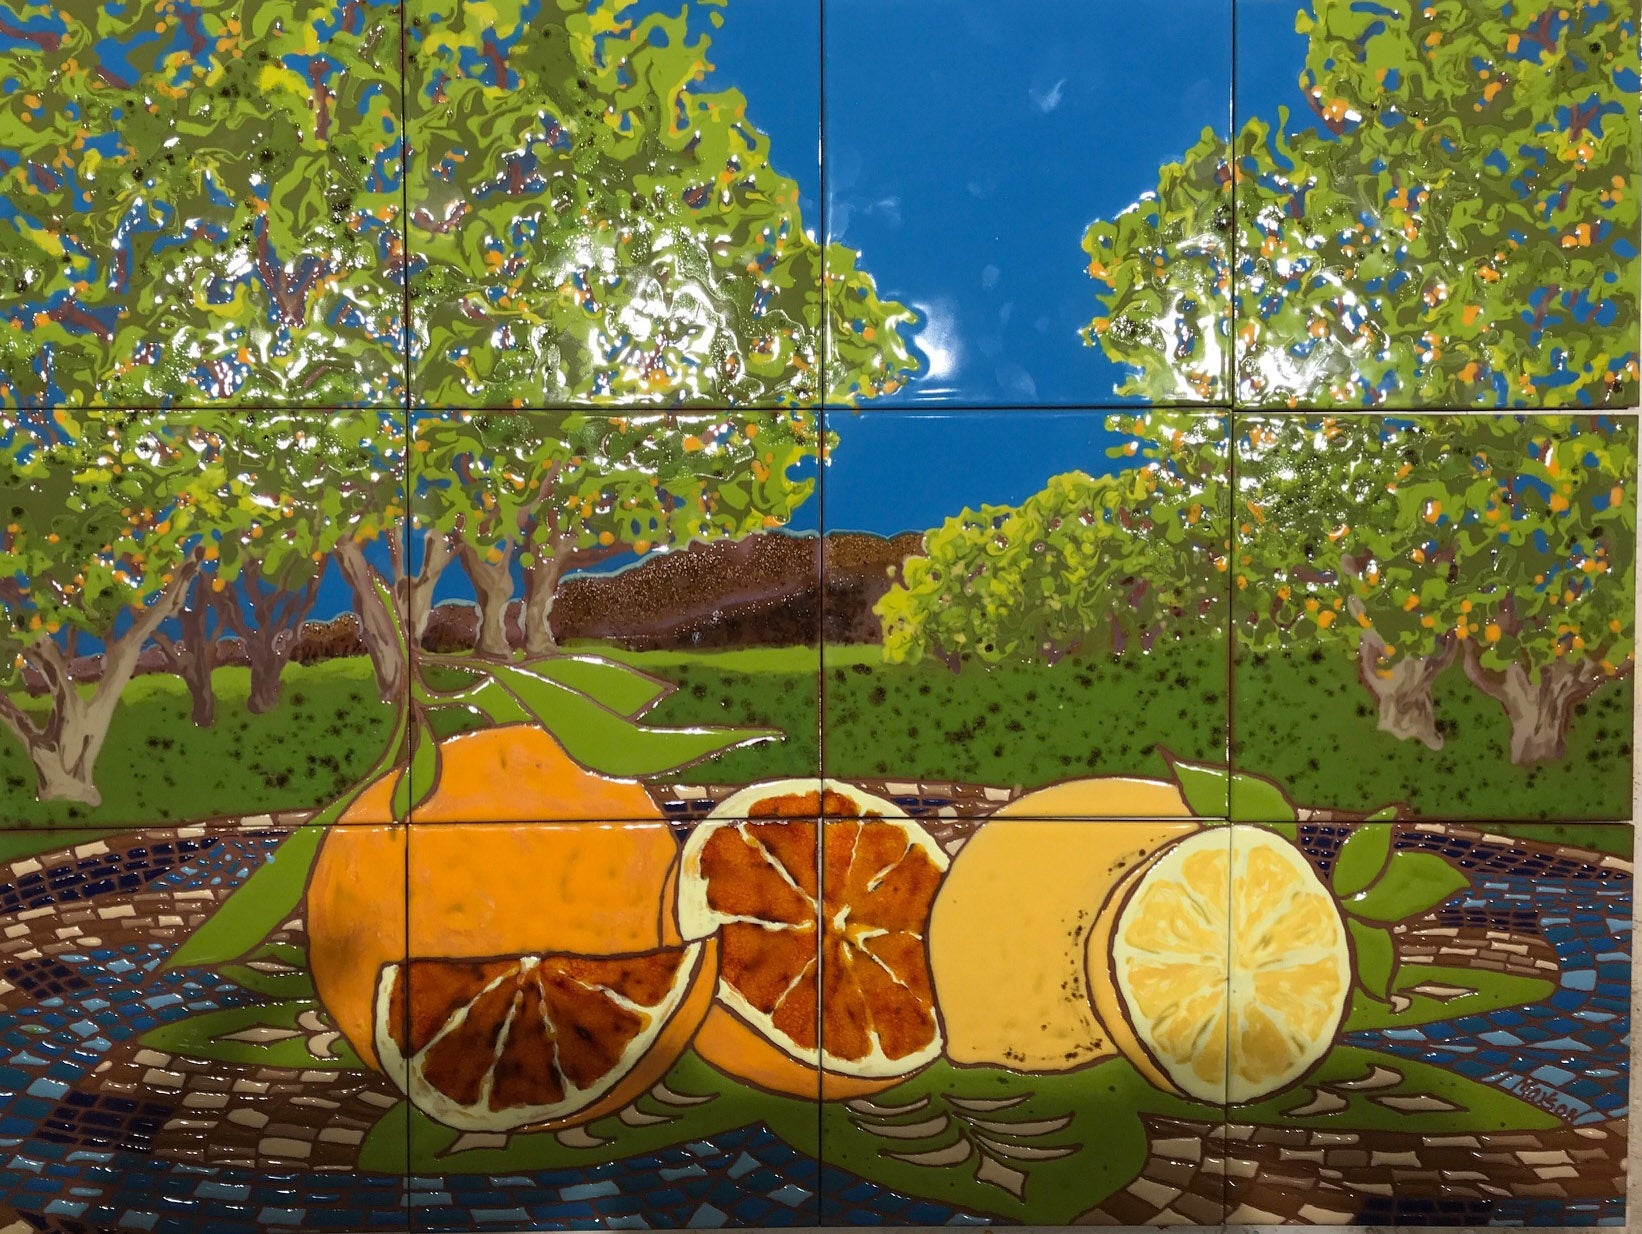 CITRUS ORCHARD, Ceramic Tile Mural, 2019